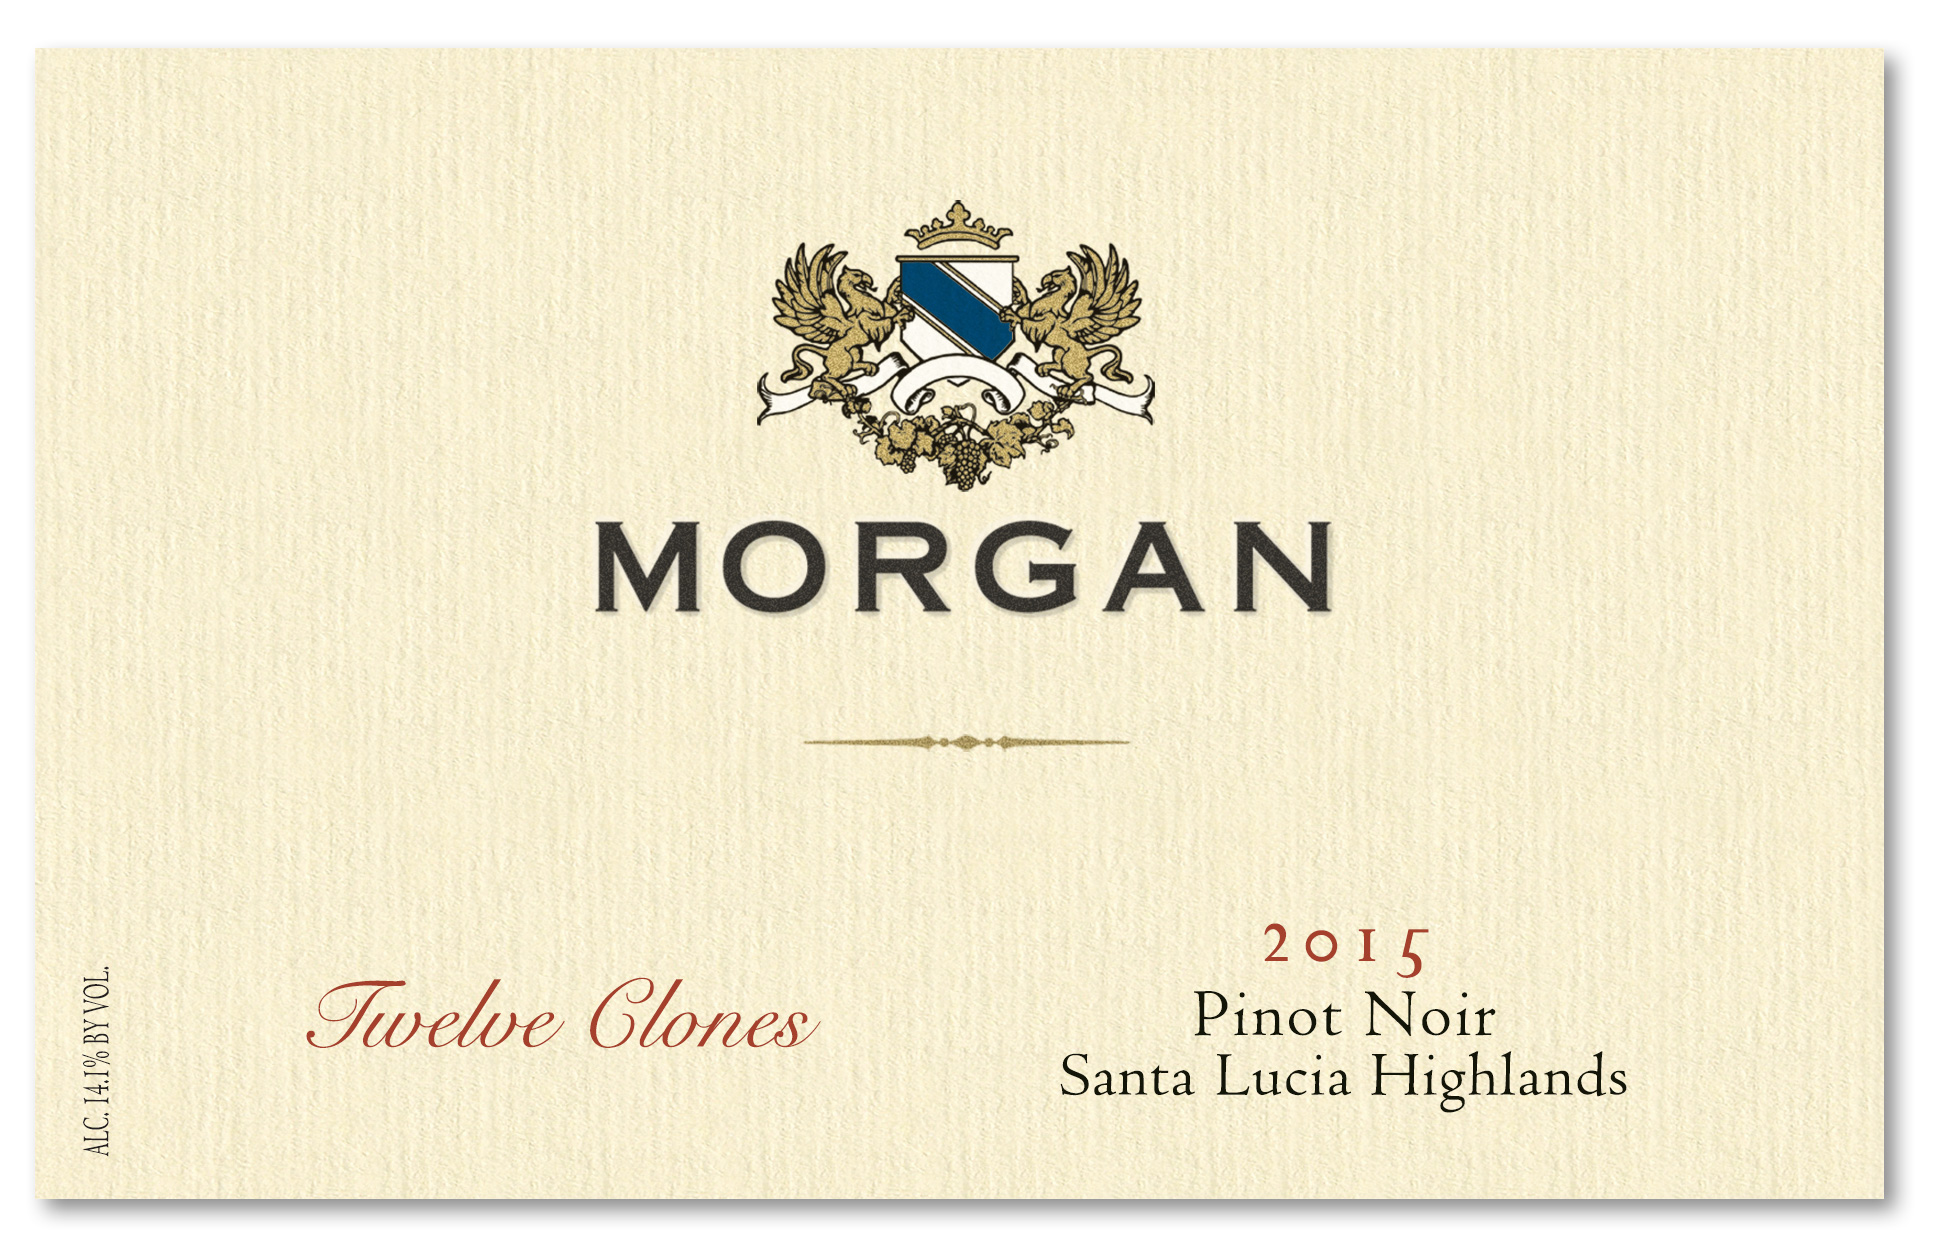 Morgan Pinot Noir Twelve Clones